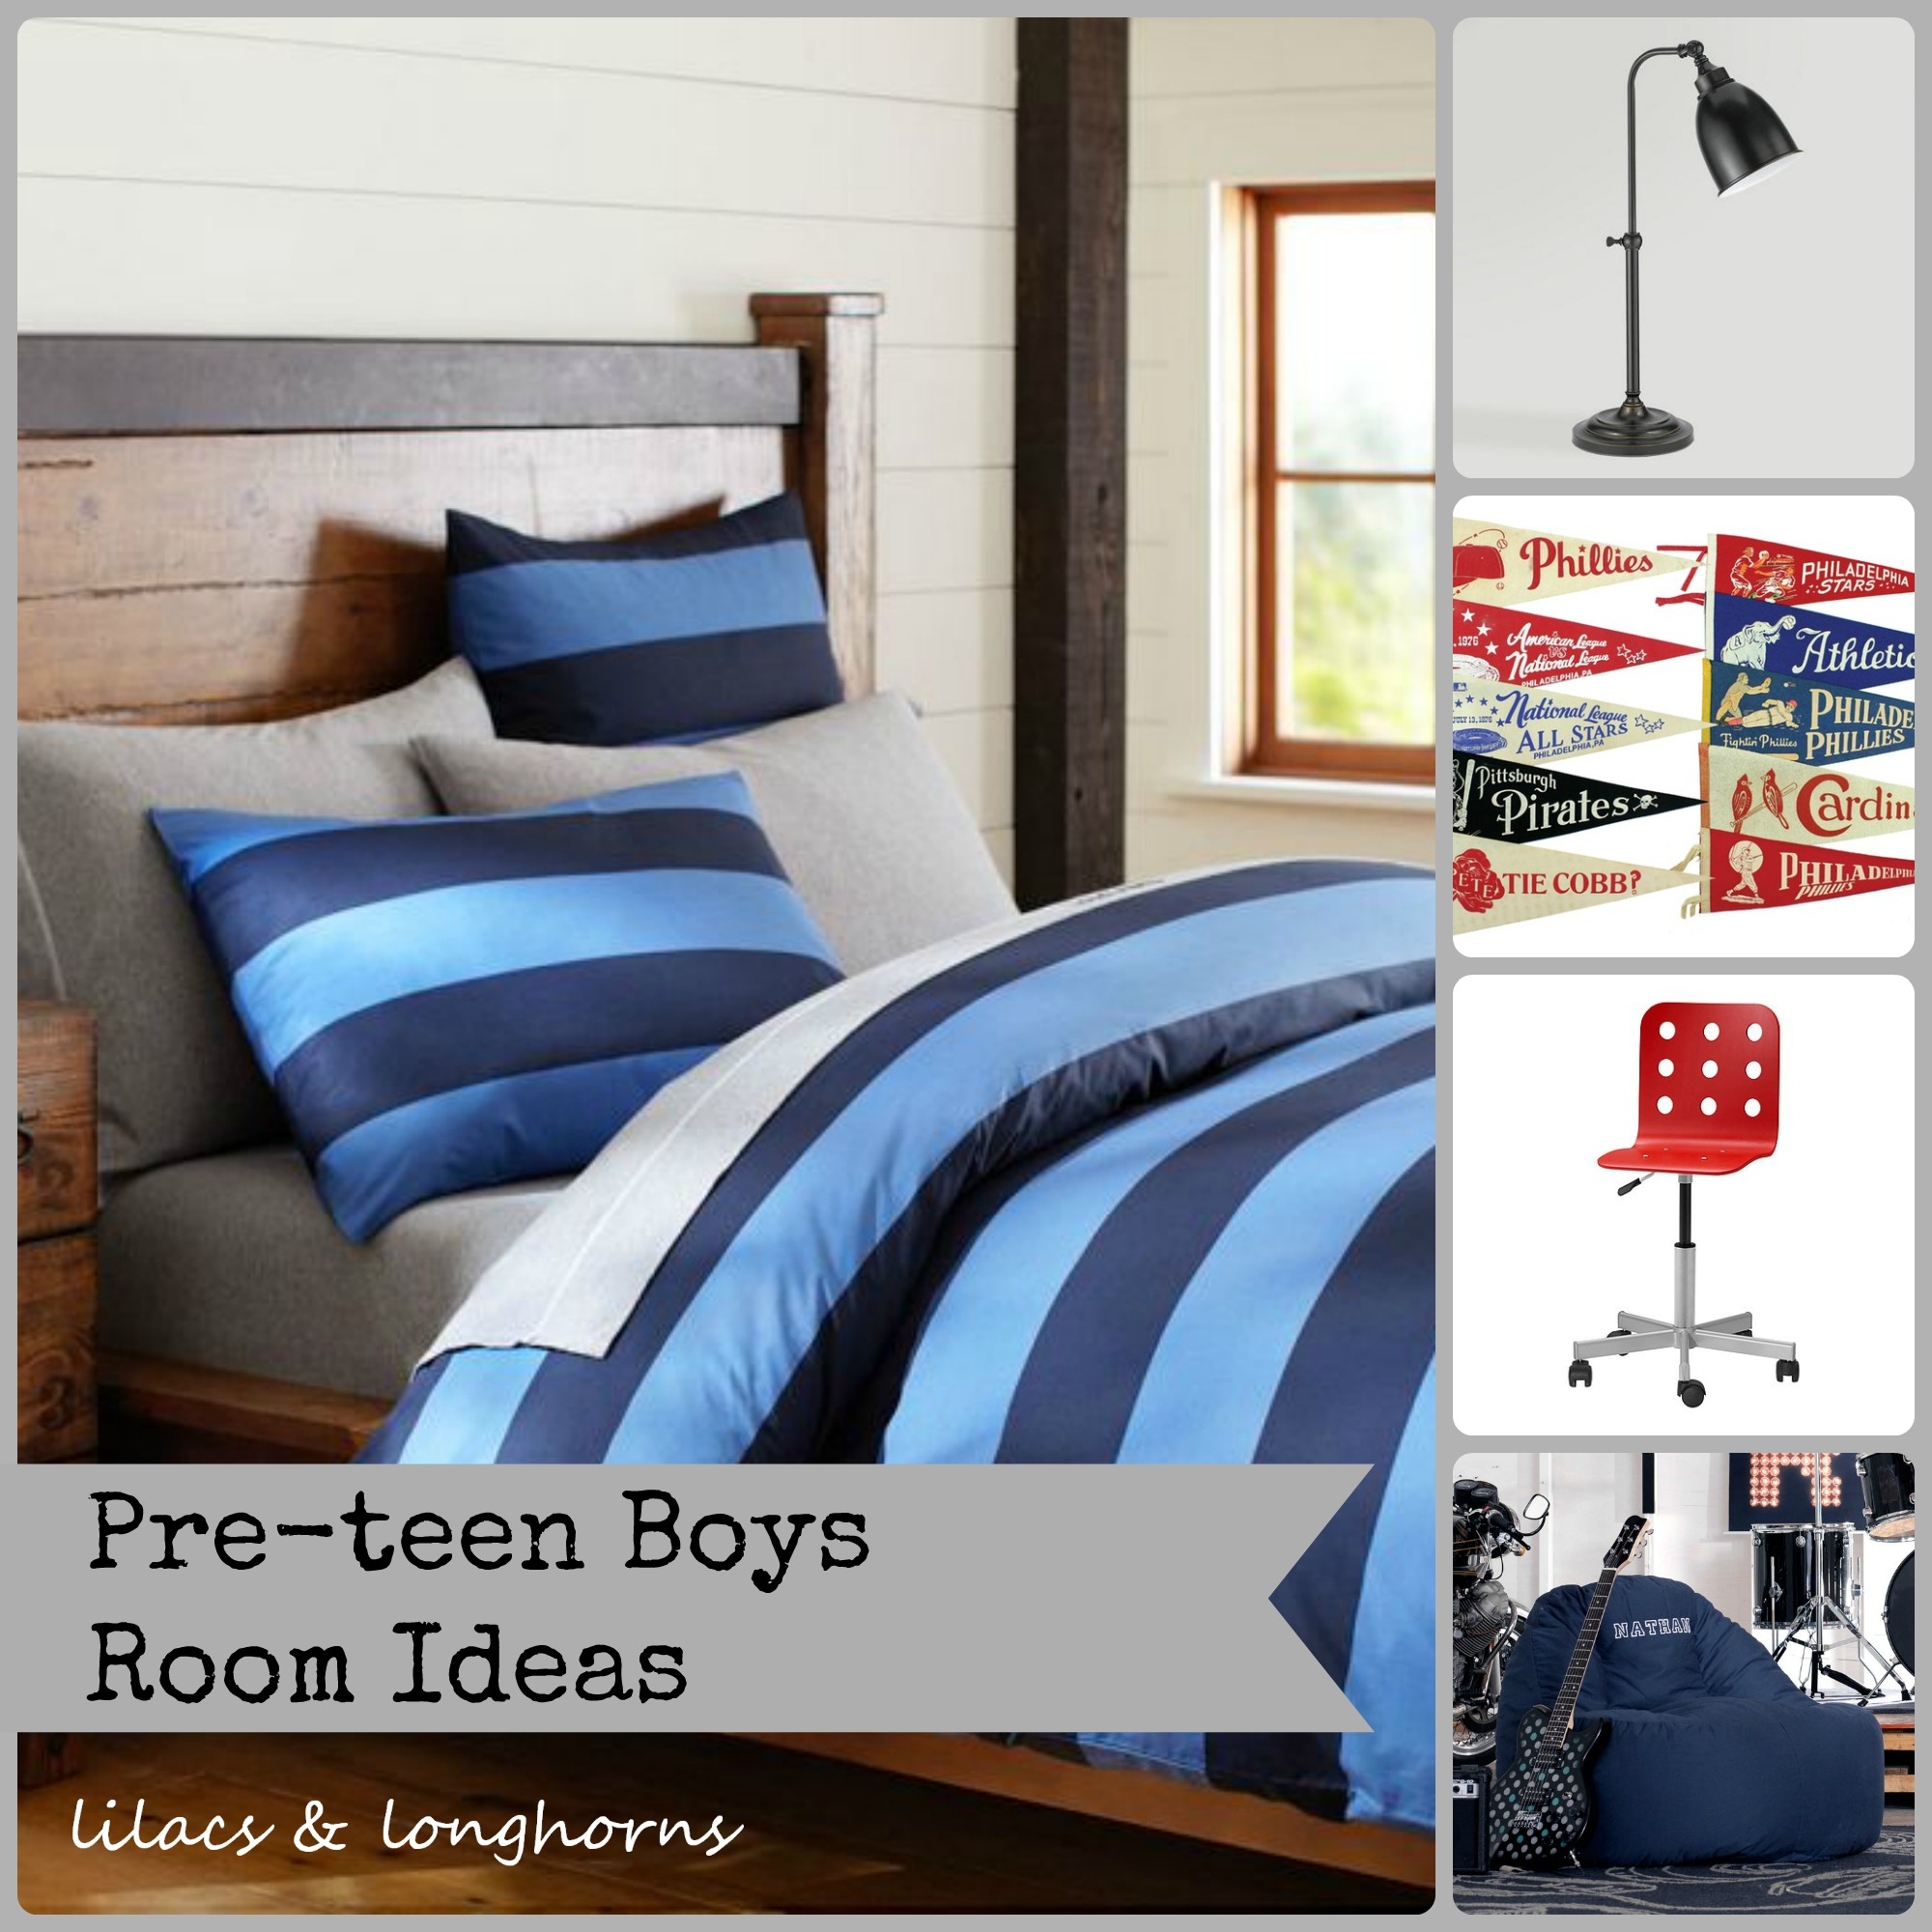 Pre teen boys room getting started lilacs and longhornslilacs and longhorns - Teen boys bedroom decorating ideas ...